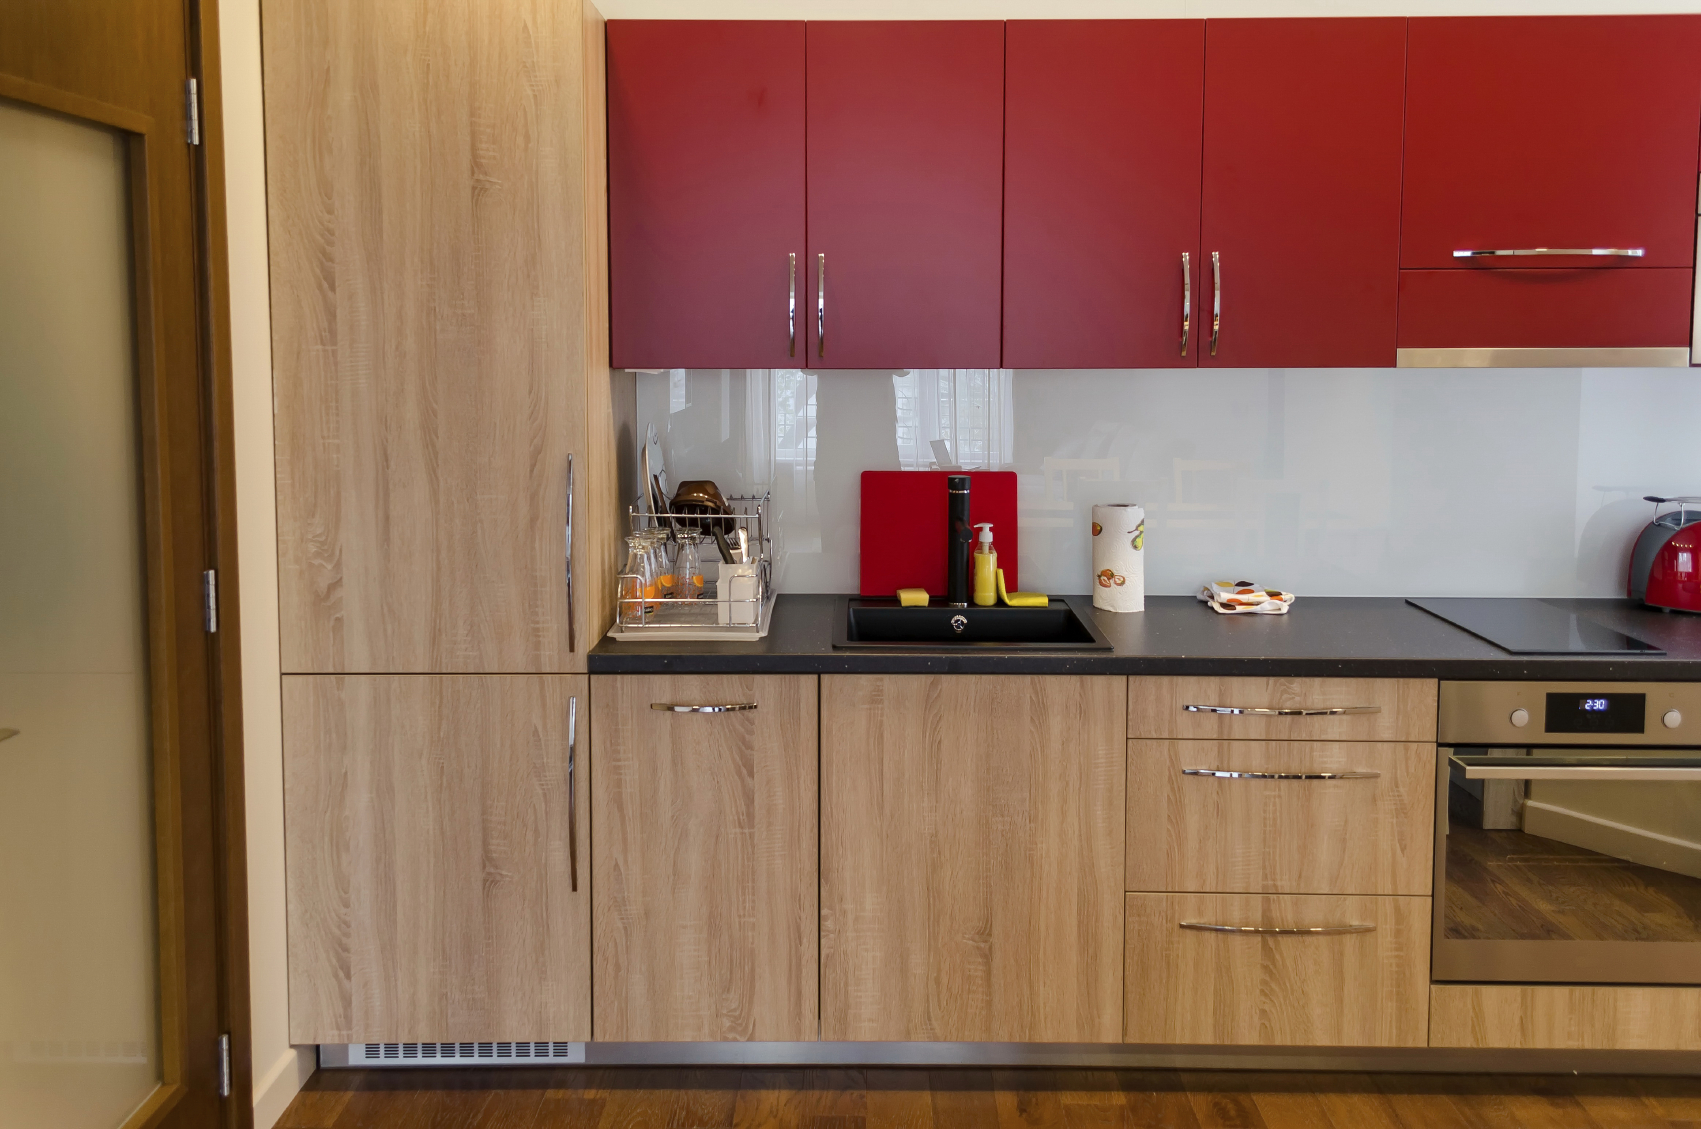 Captivating Kitchen Cabinet Designs Of 2015